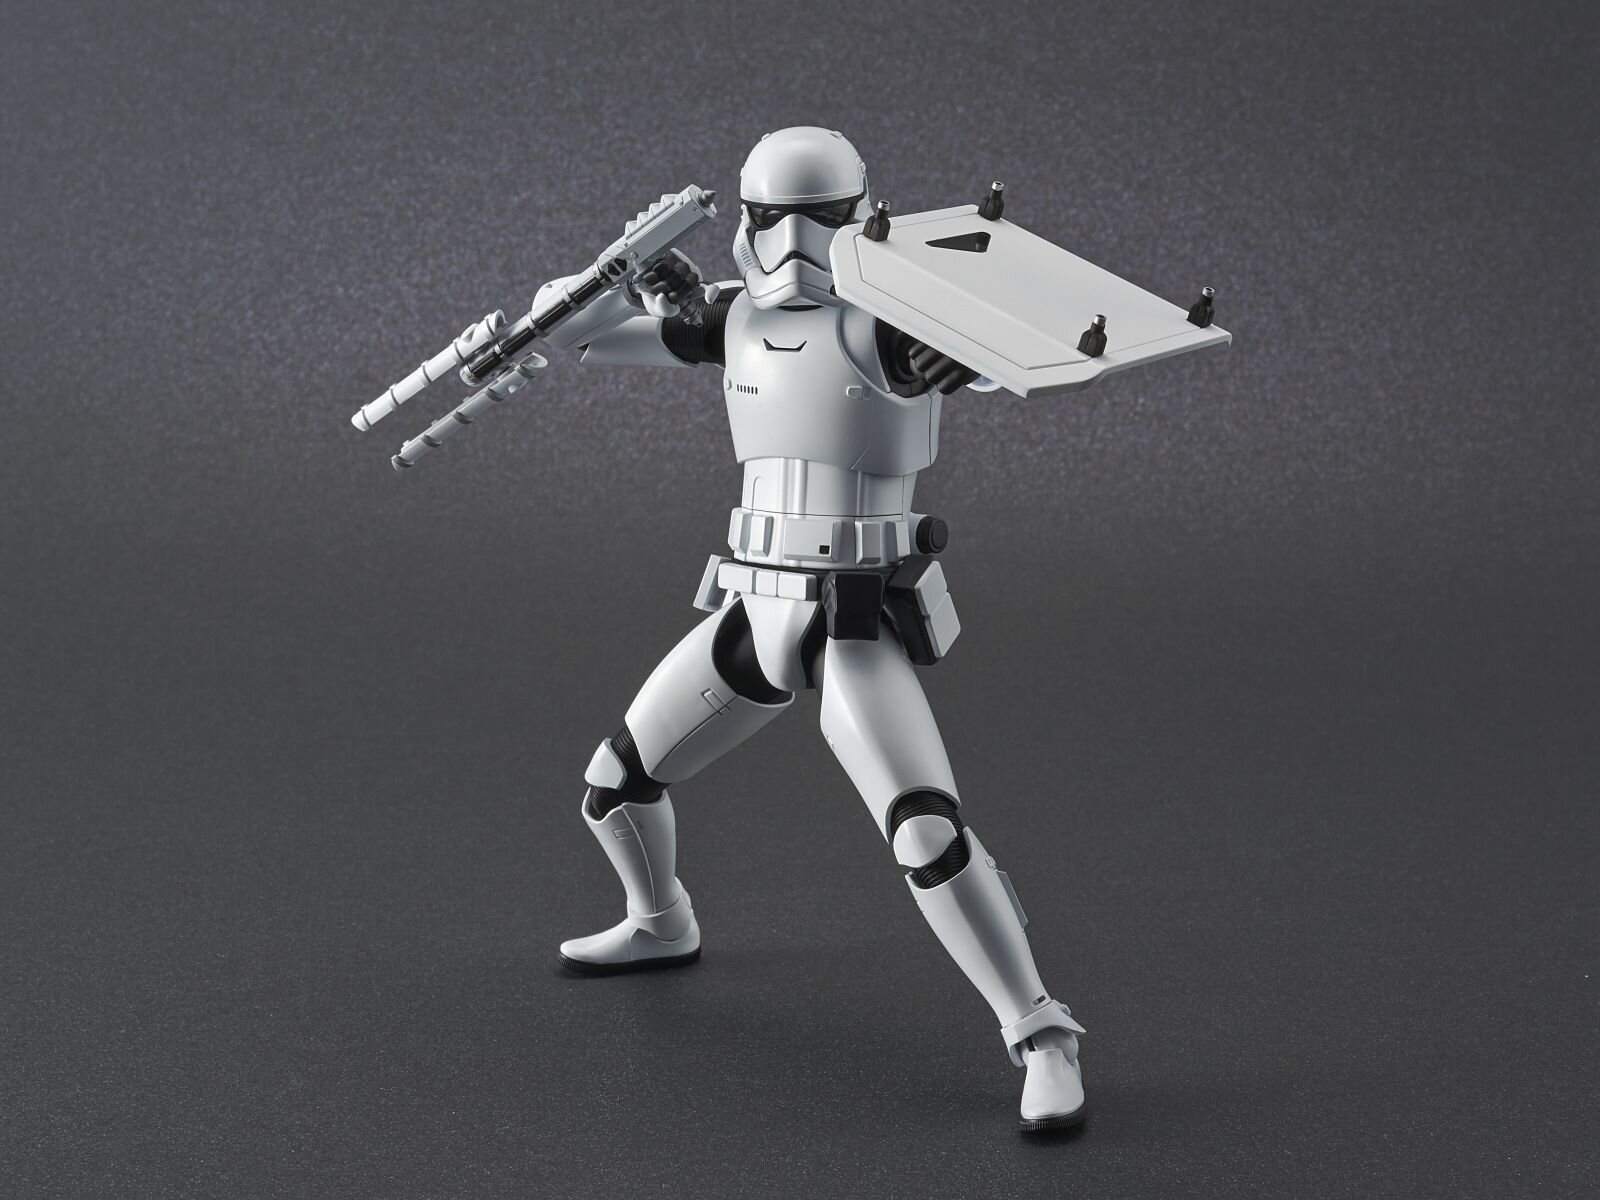 ep9_stormtrooper_action02.jpg